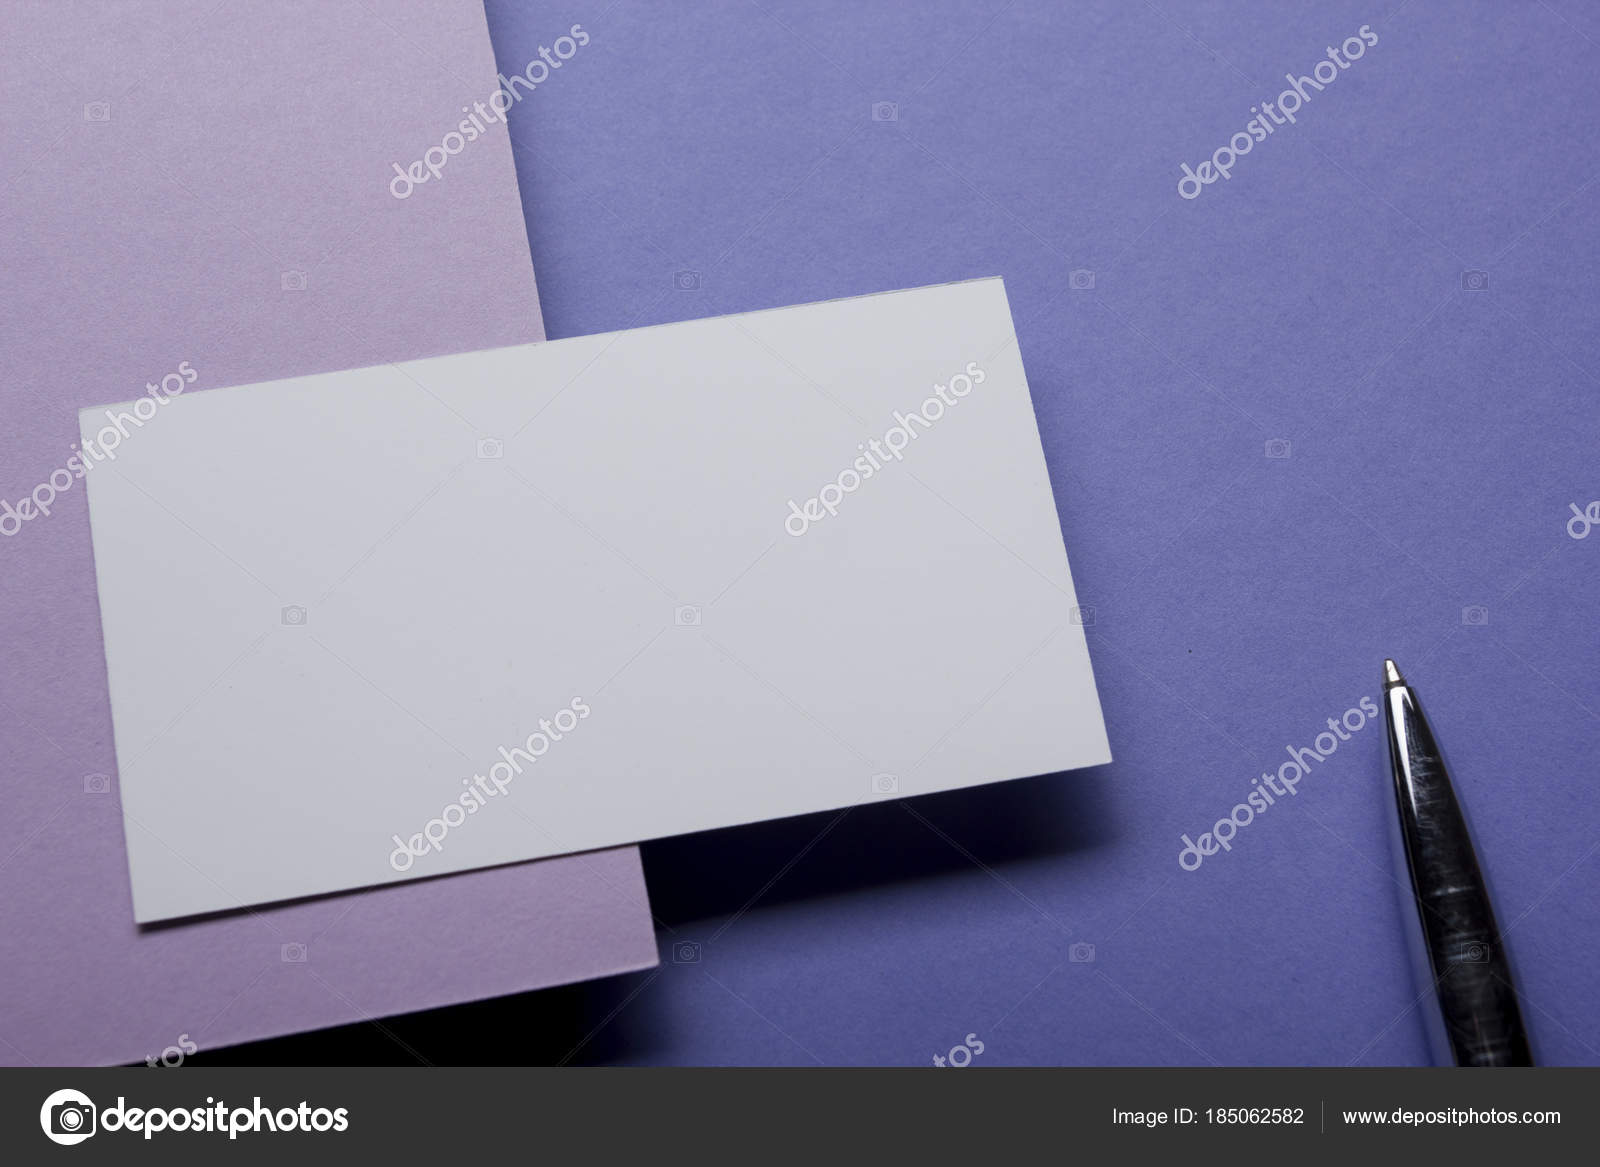 Business cards mockup on color background flat lay copy space for business cards mockup on color background flat lay copy space for text stock colourmoves Image collections